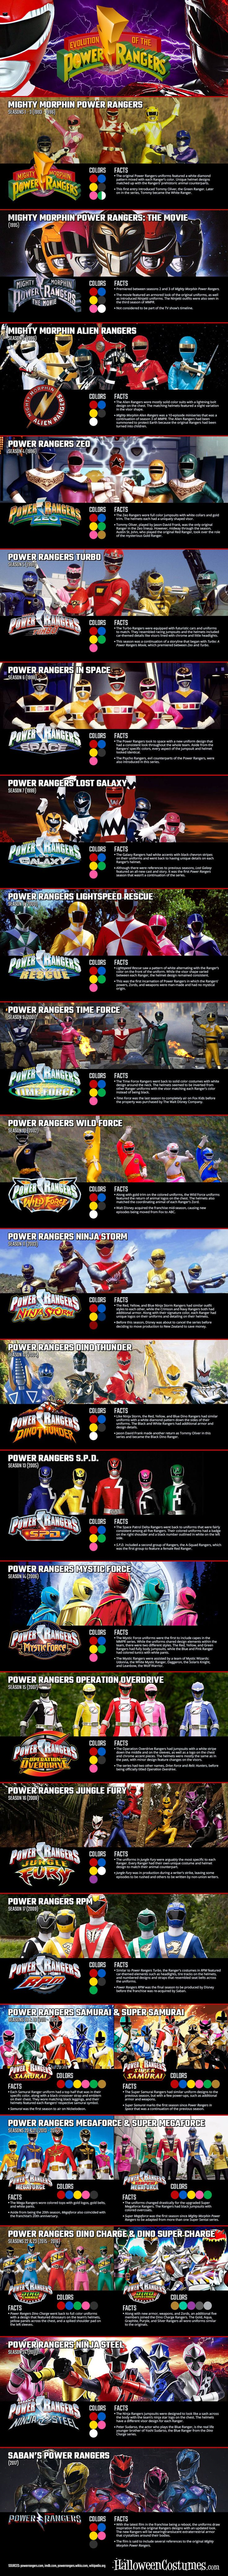 the-evolution-of-power-rangers-costumes-over-the-years-inforgraphic1